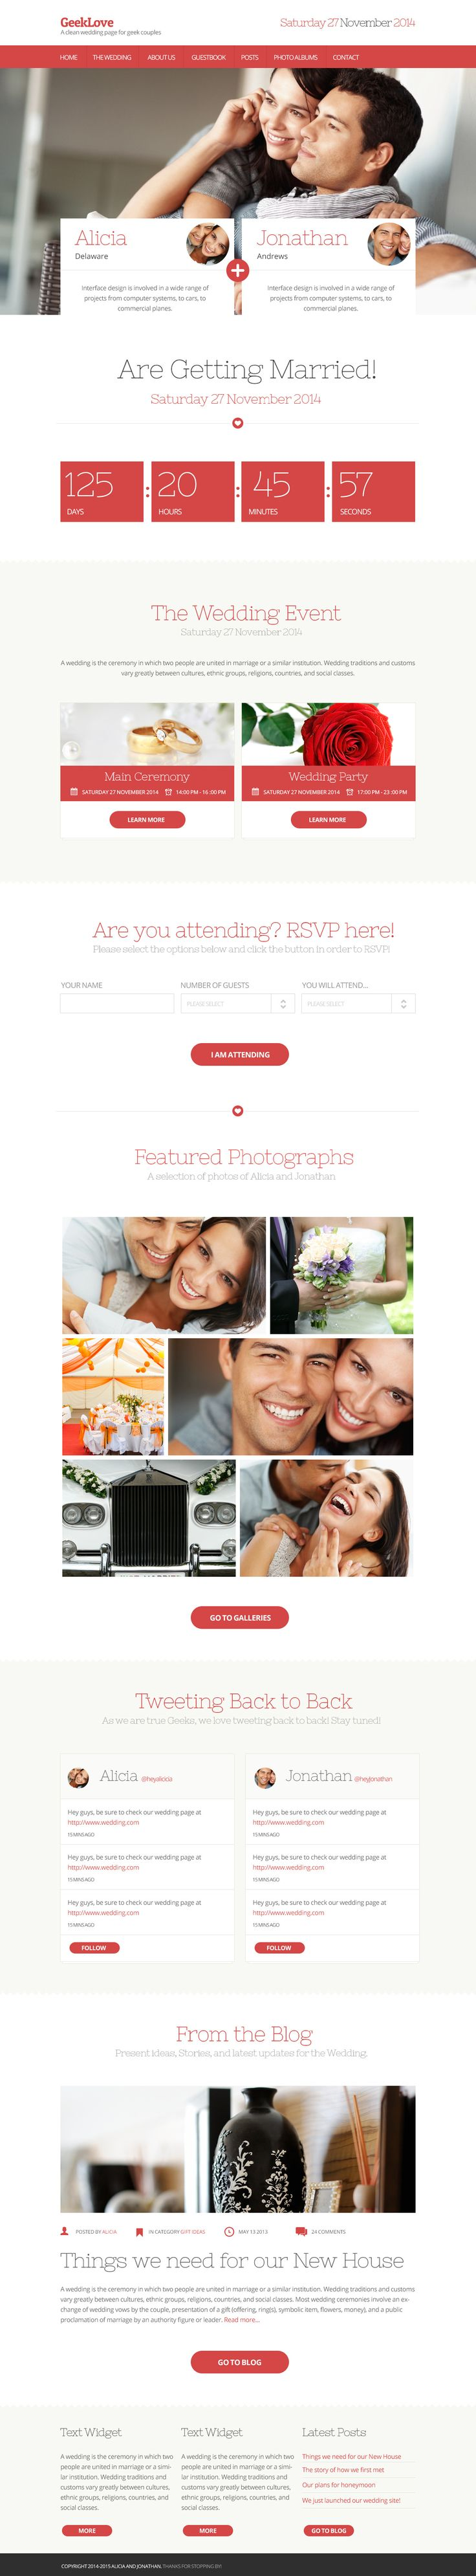 277 best WordPress Themes images on Pinterest | Website ideas ...